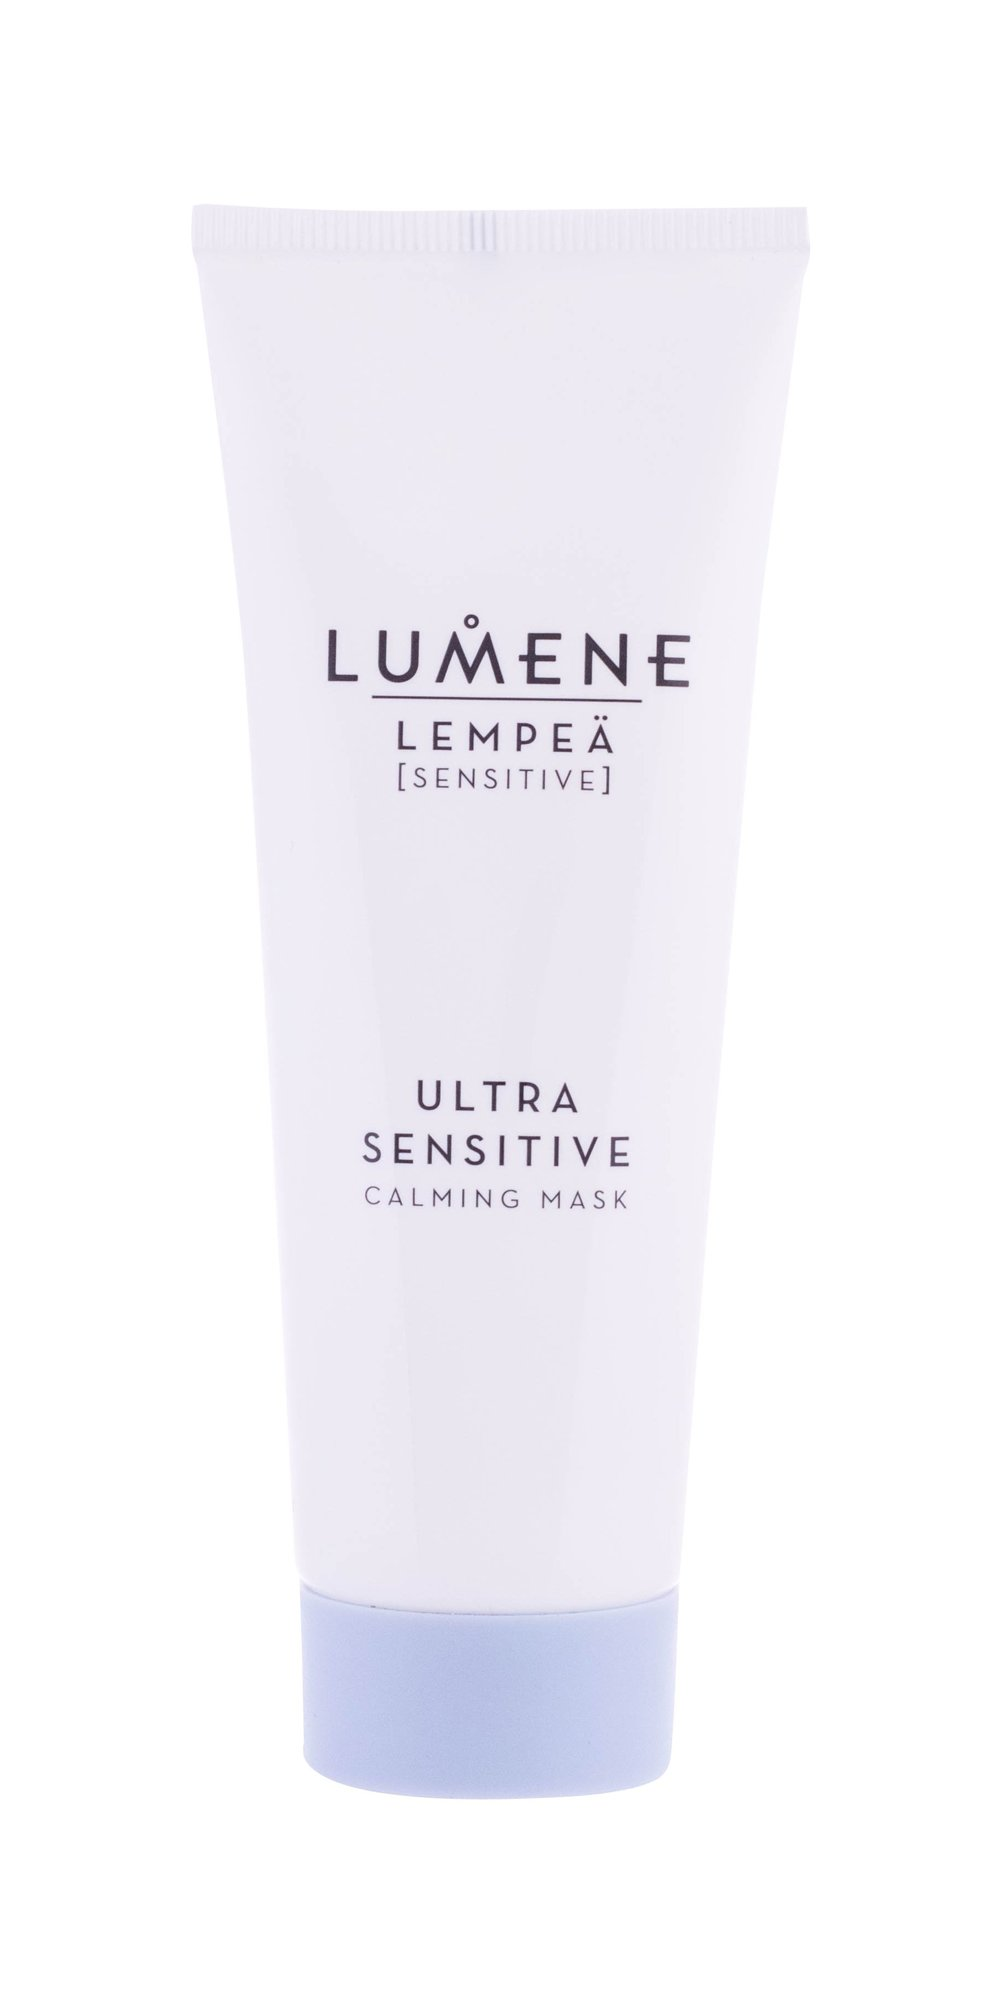 Lumene Lempeä Face Mask 75ml